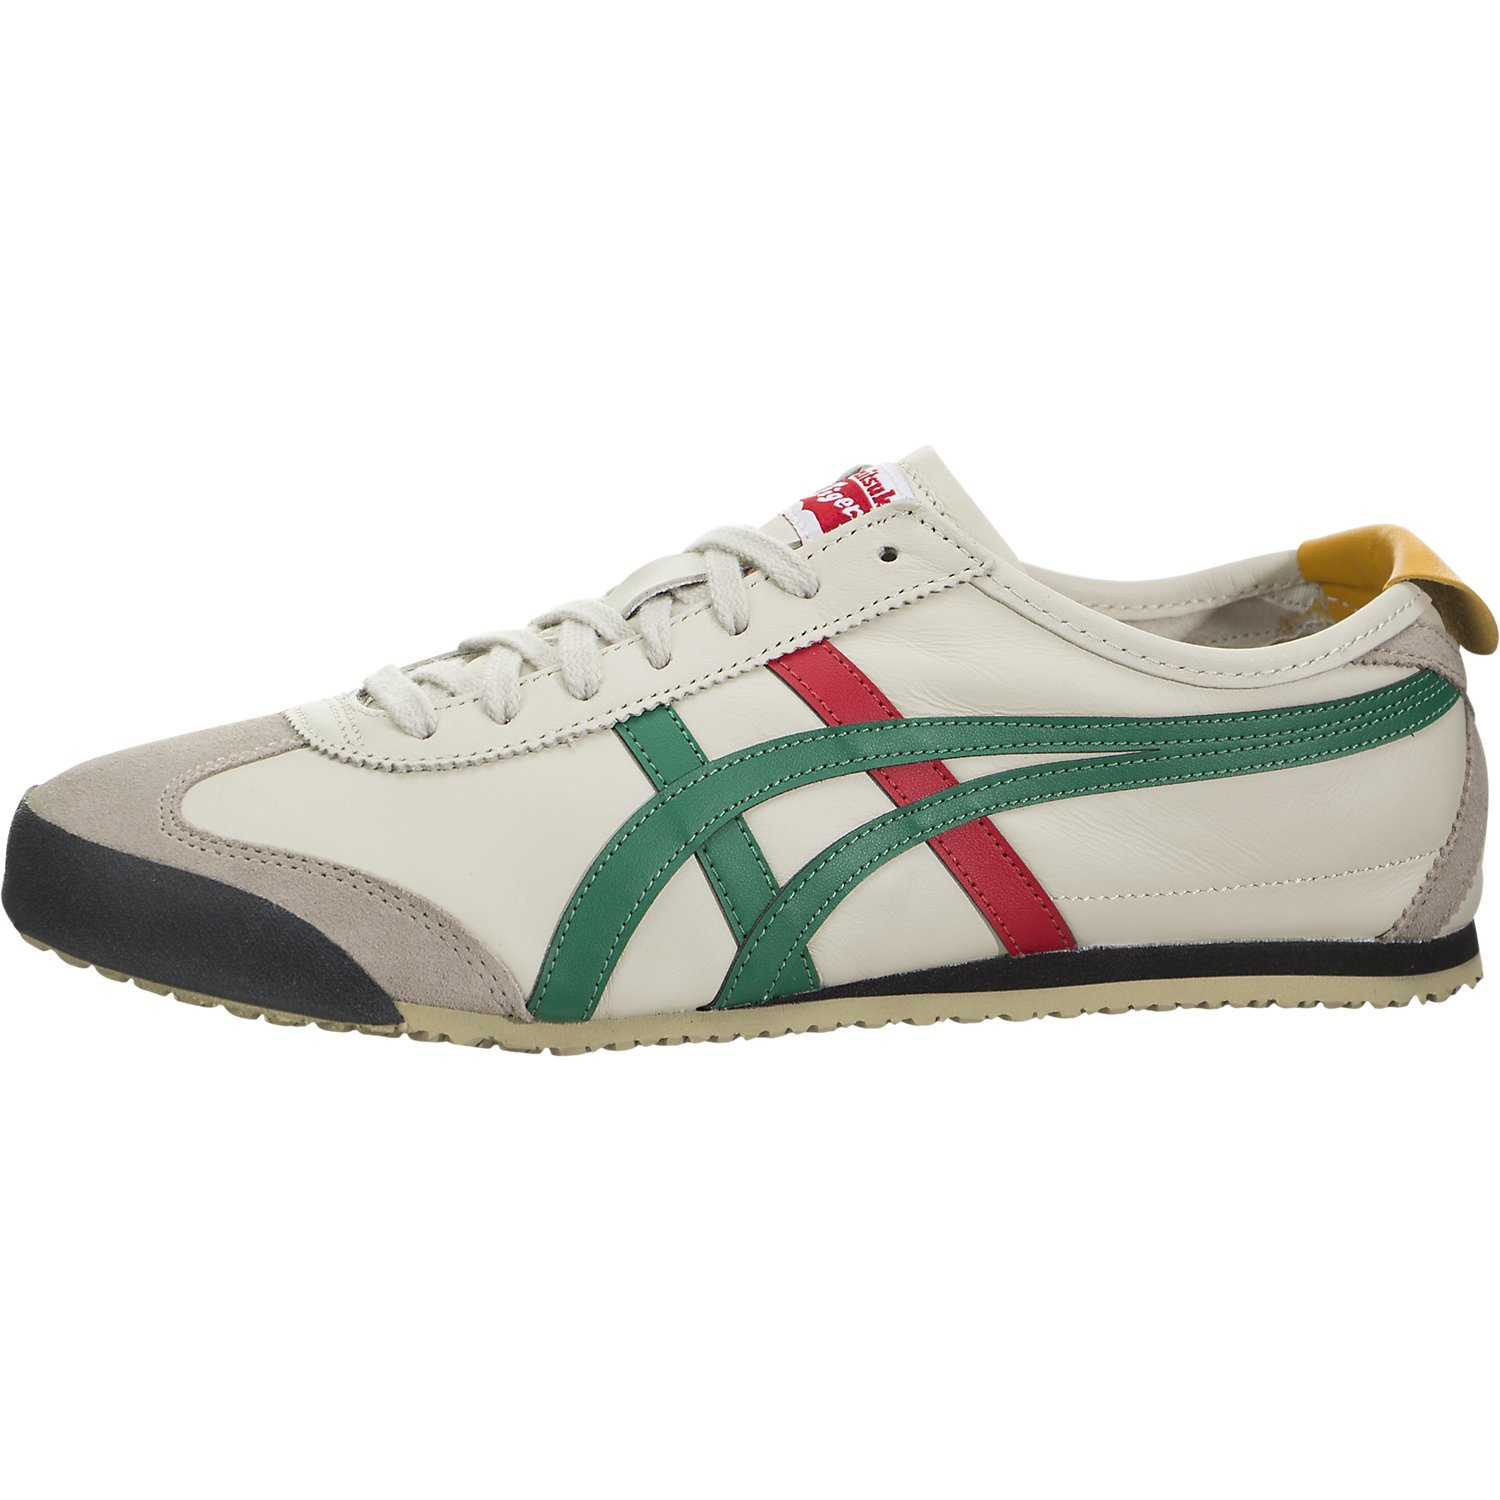 competitive price 24382 075bf Onitsuka Tiger Unisex Mexico 66 Shoes DL408, Birch/Green, 8 M US